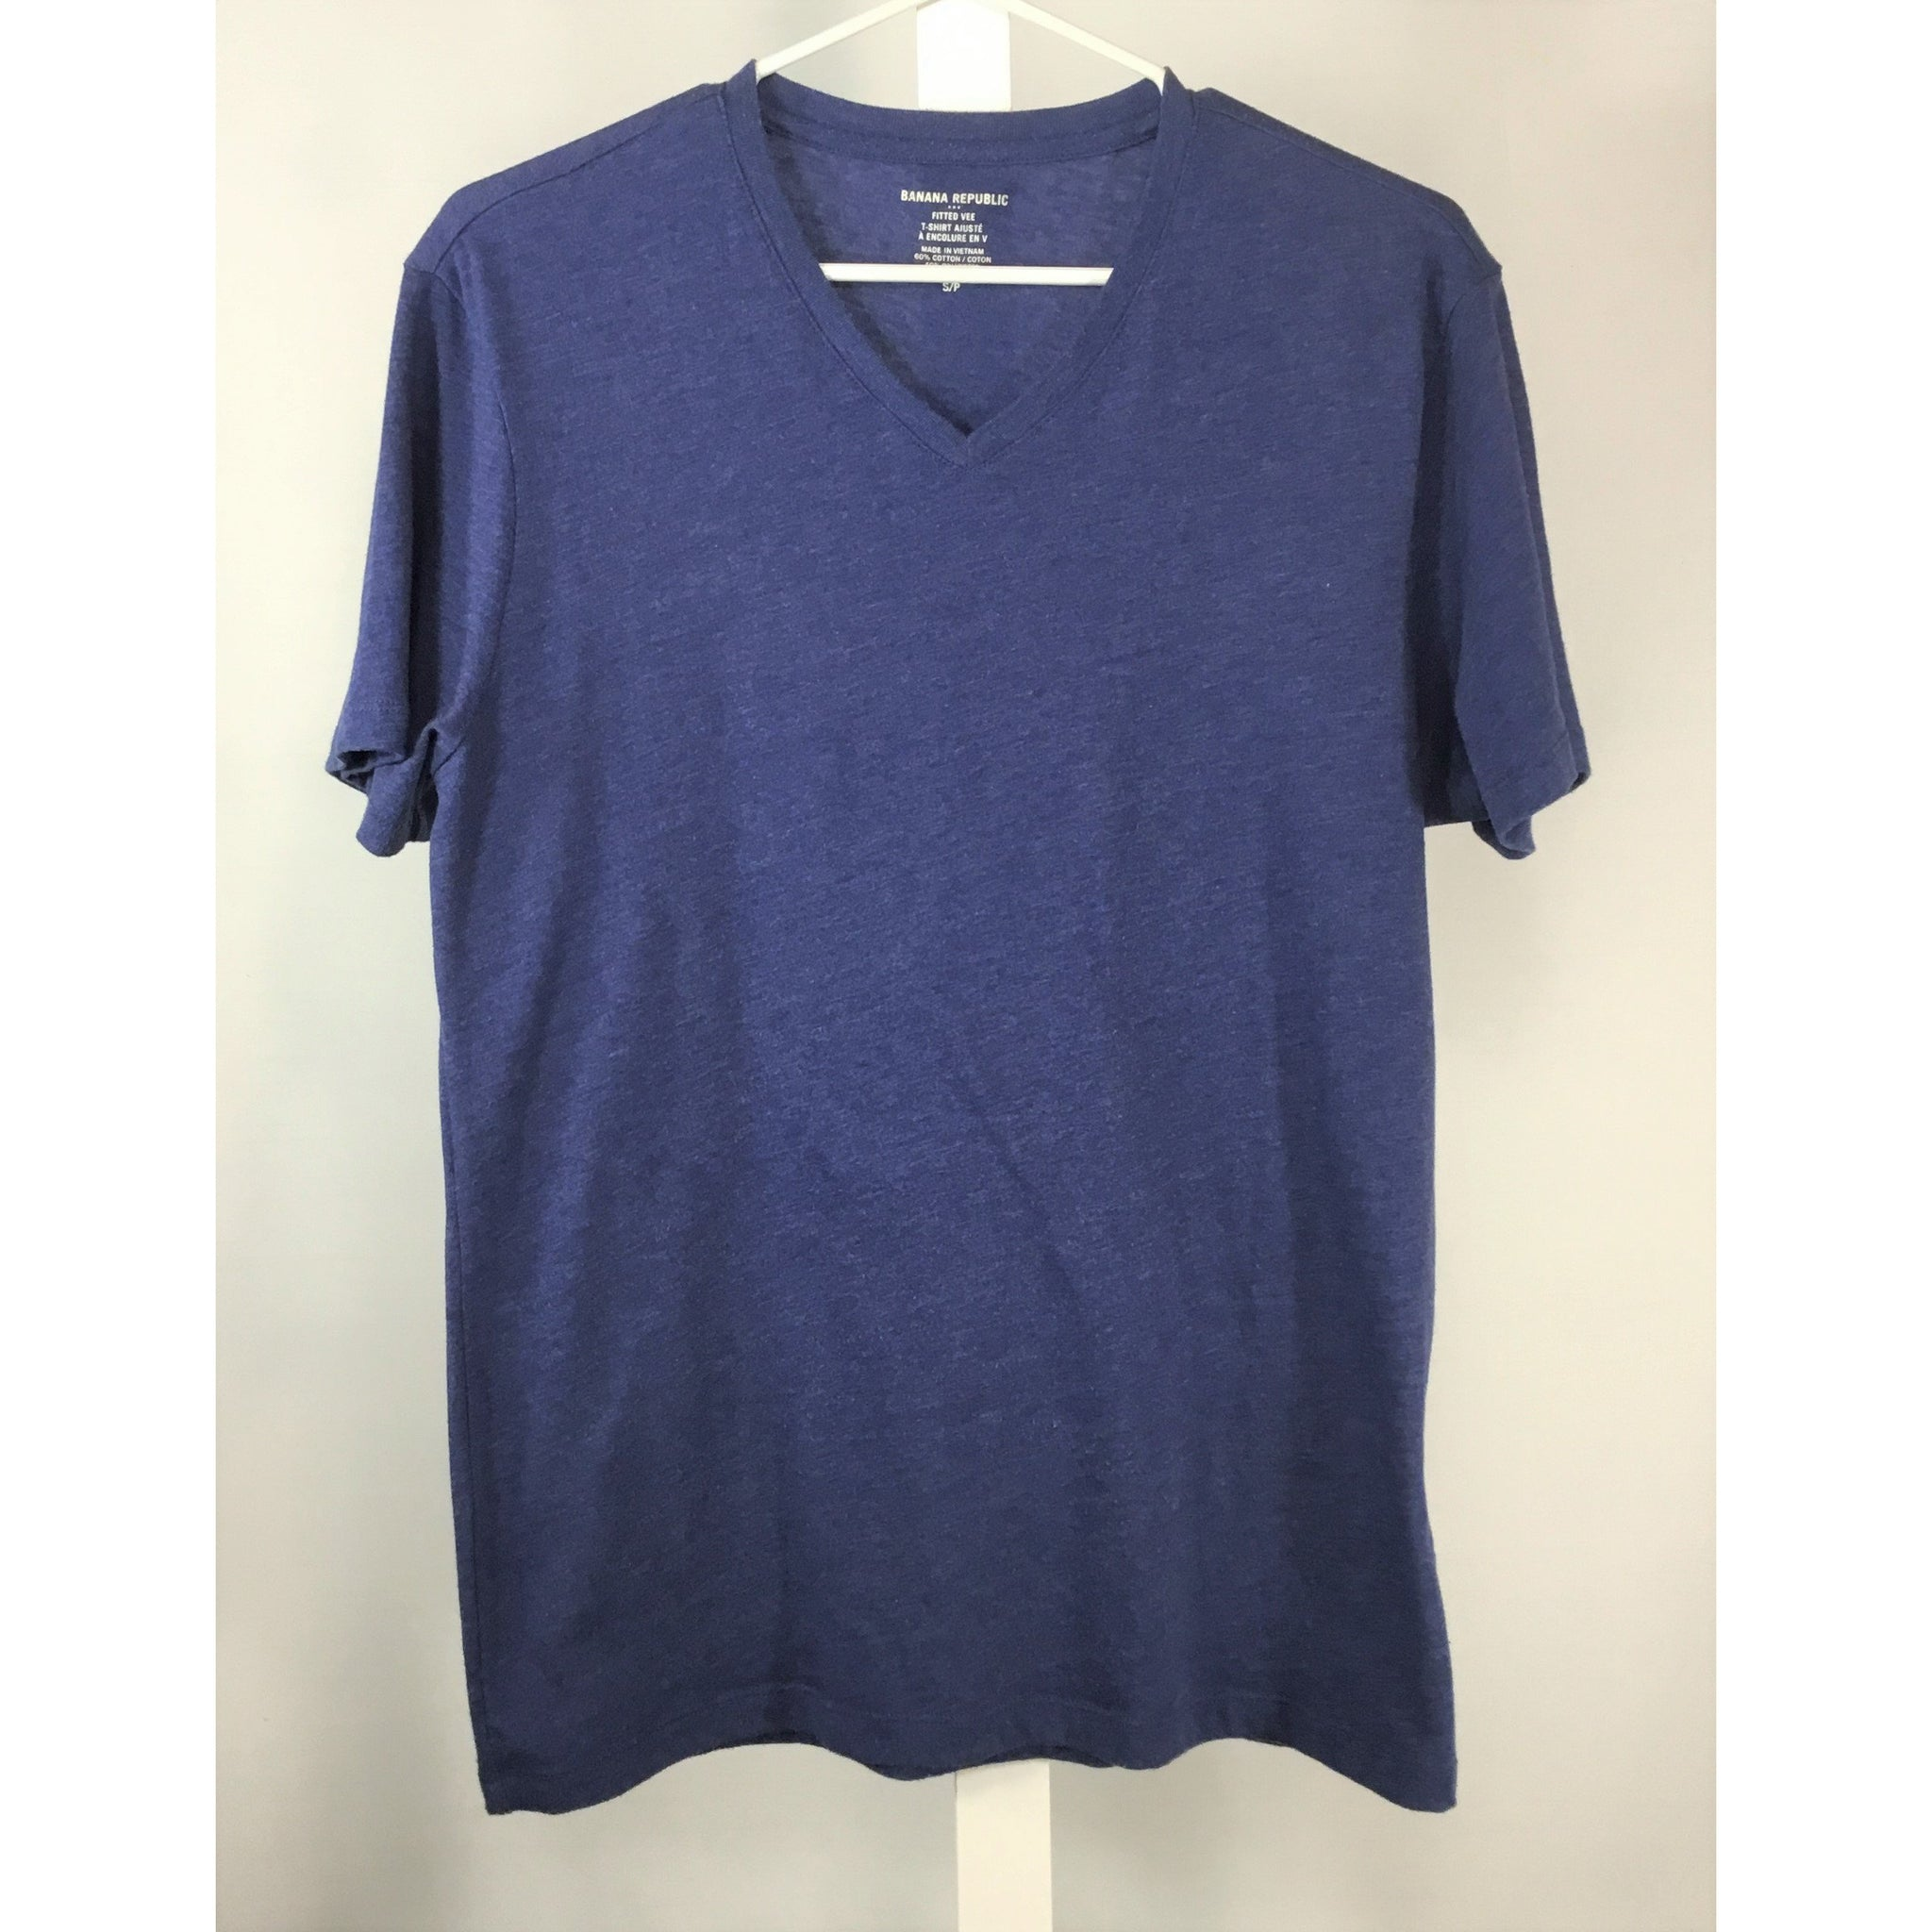 Banana Republic Blue Fitted Tee - size S